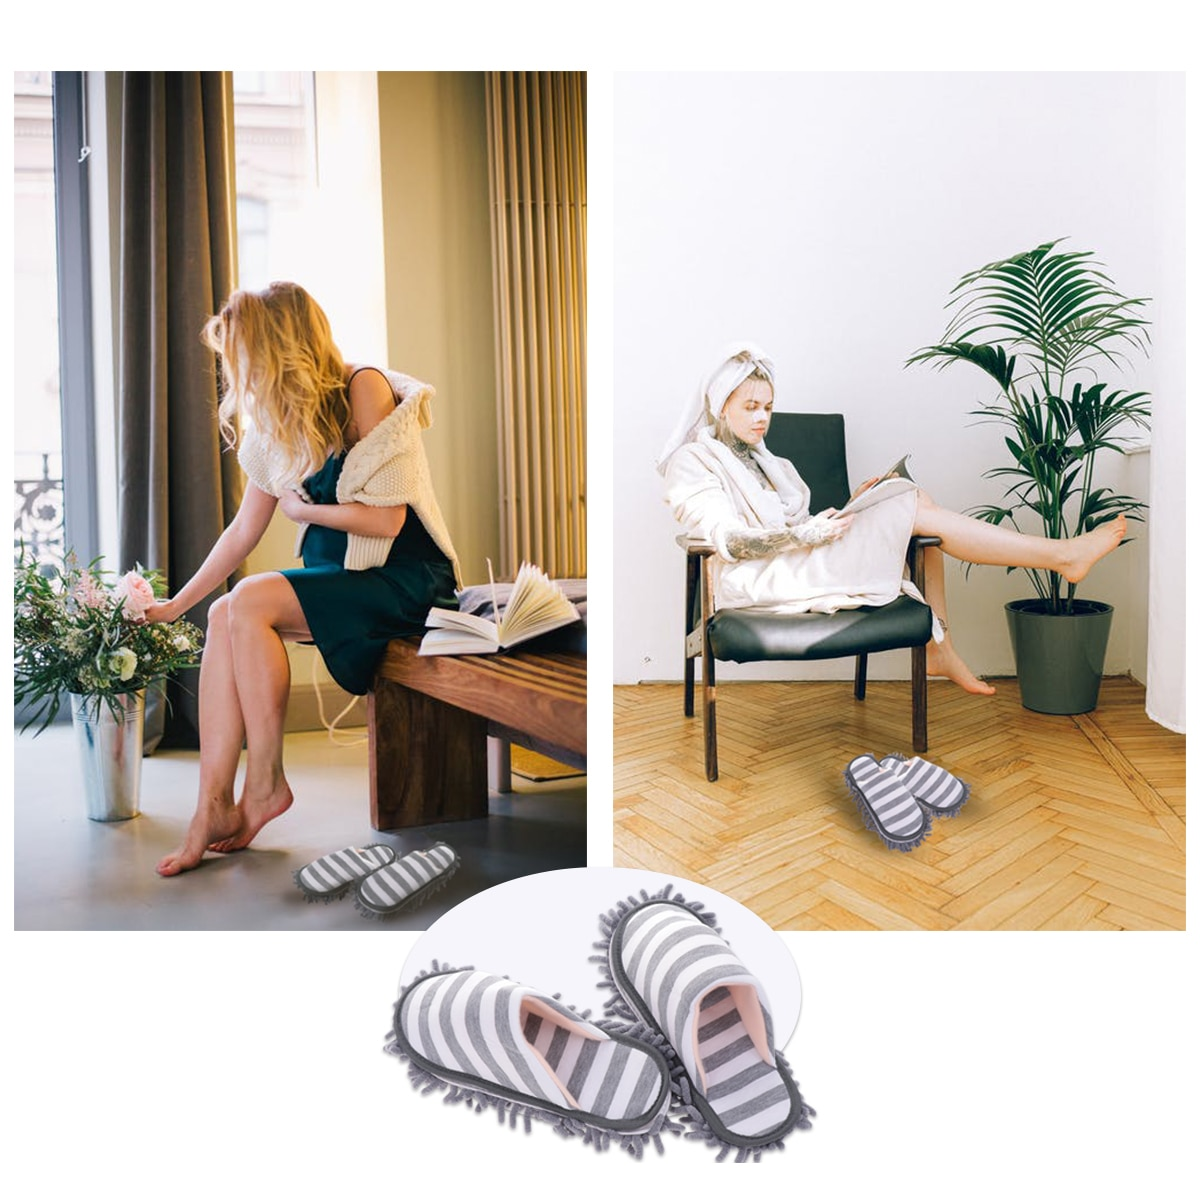 1 Pair Lazy mop slippers women Man unisex bathroom slippers for dry foot cleaning floor Slipper Drag Shoe Mop Household Tools